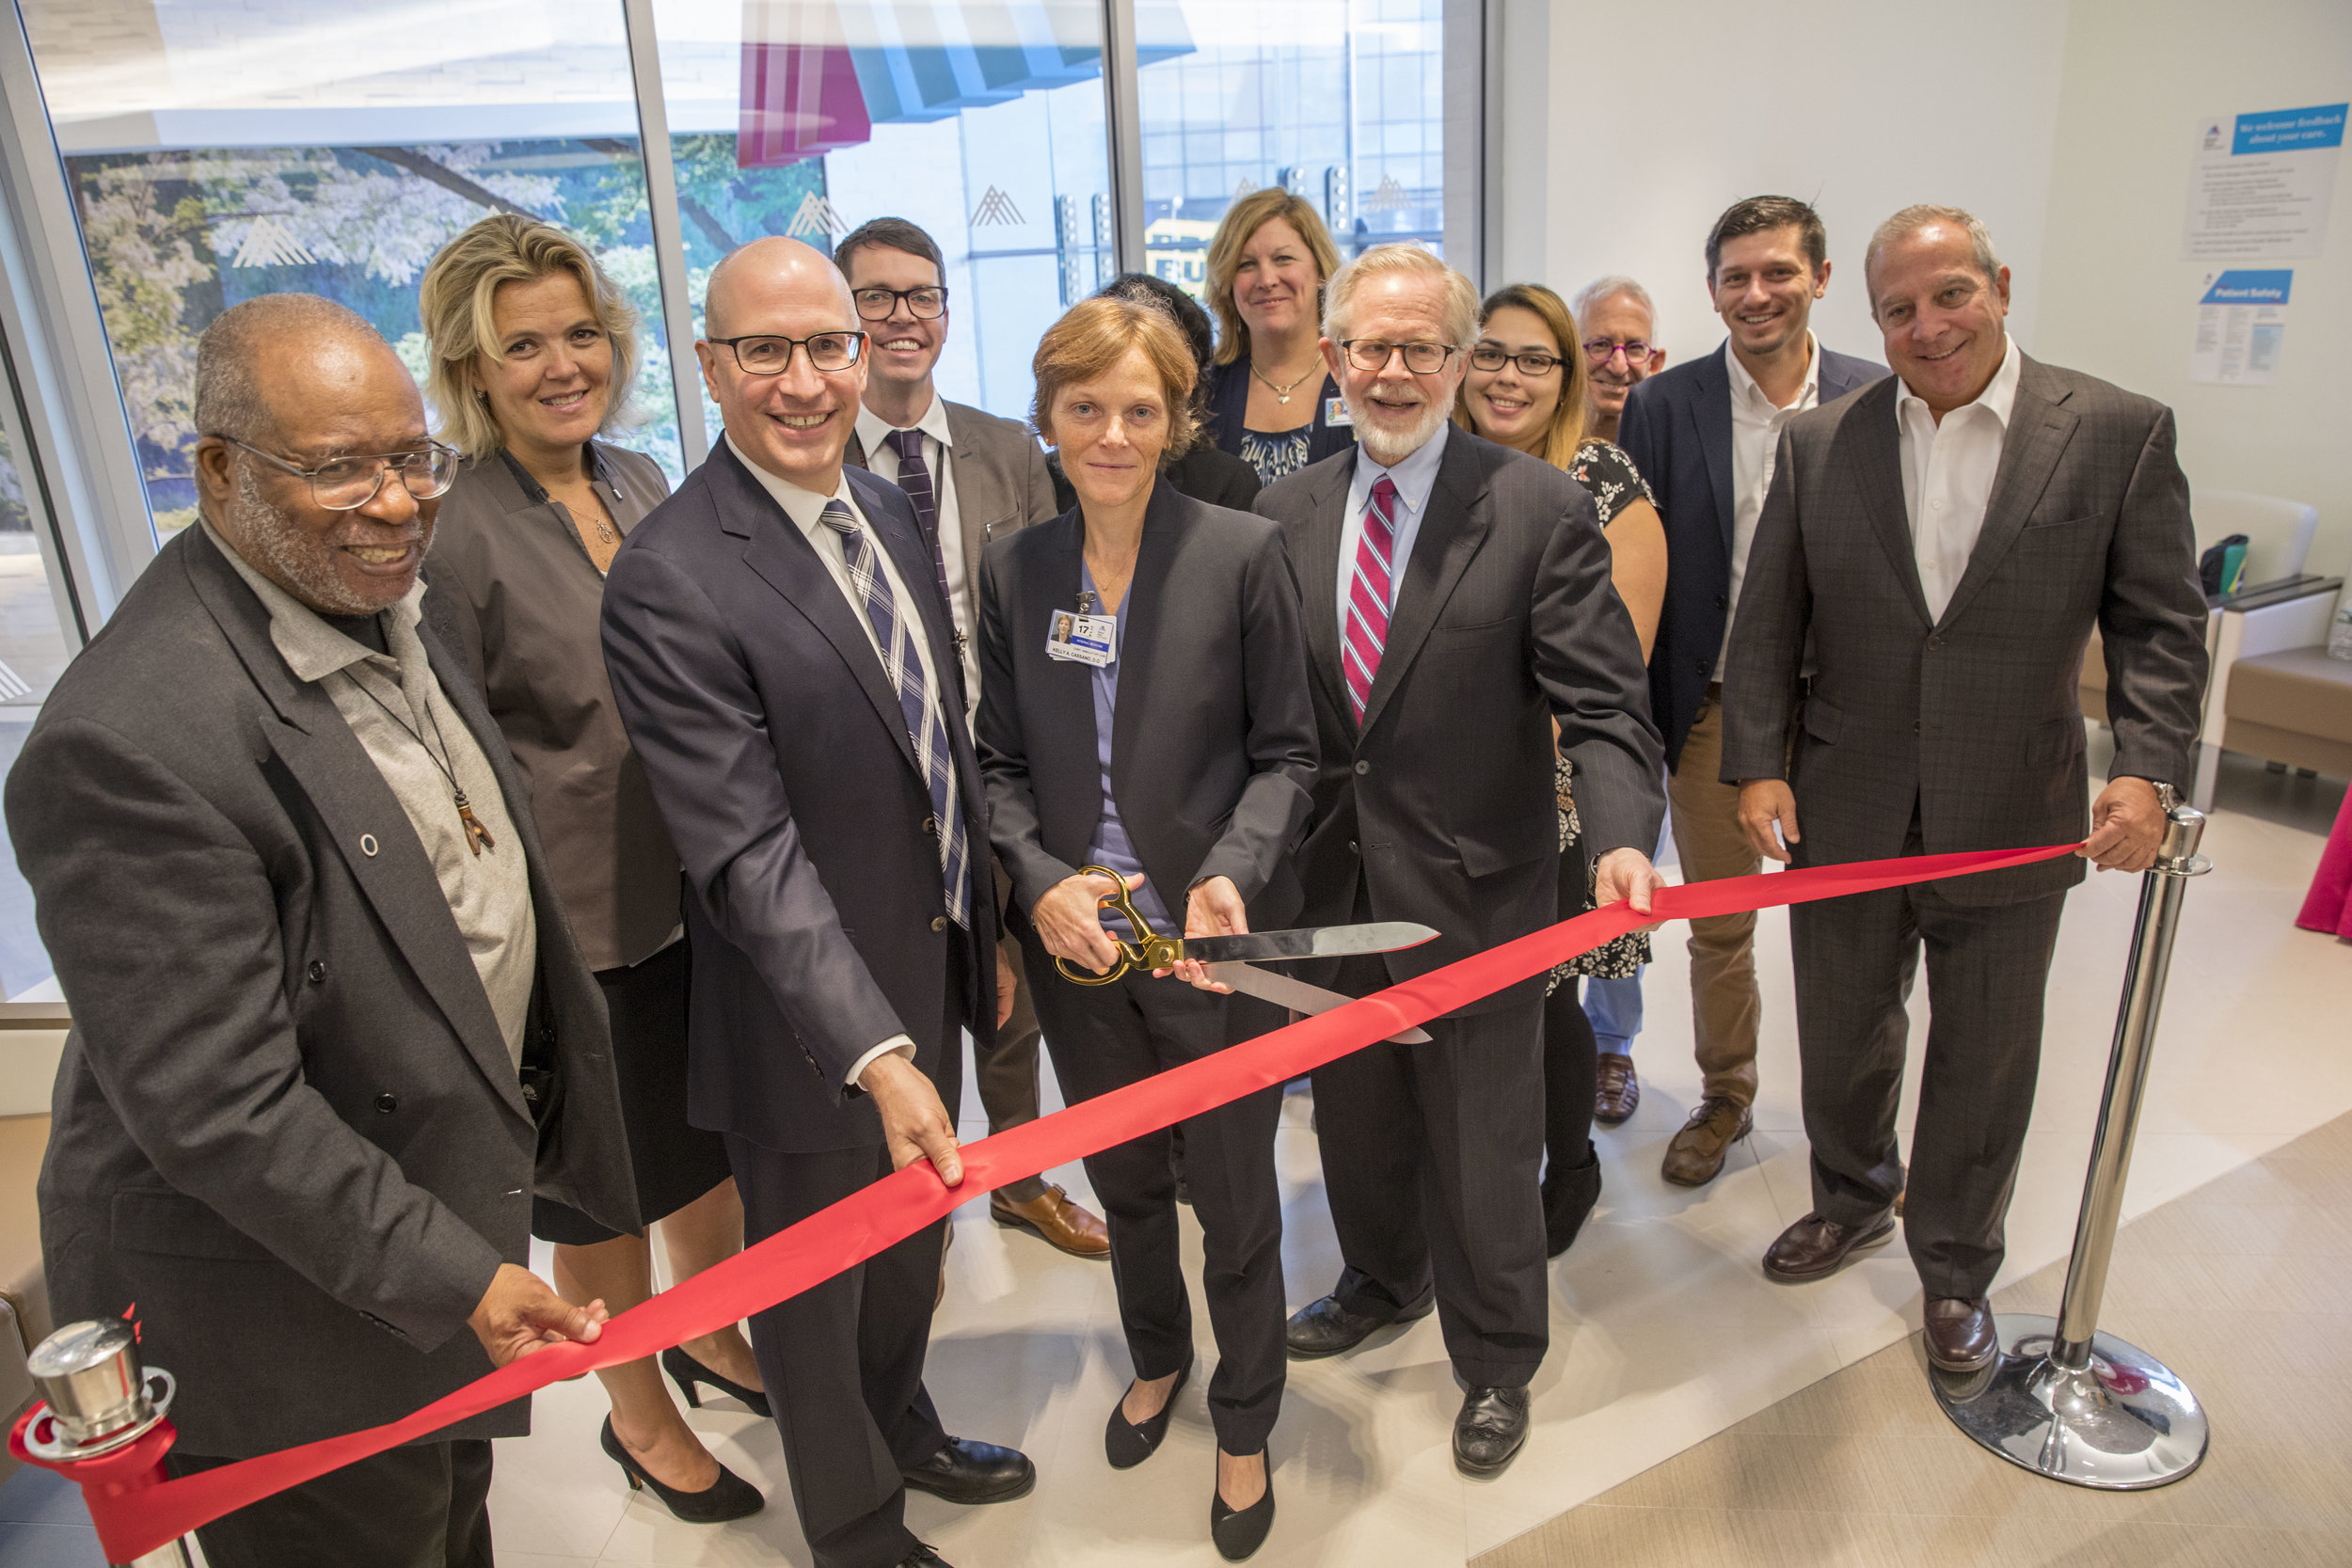 USP joined Mount Sinai health professionals to cut the ribbon on their new Urgent Care Center.